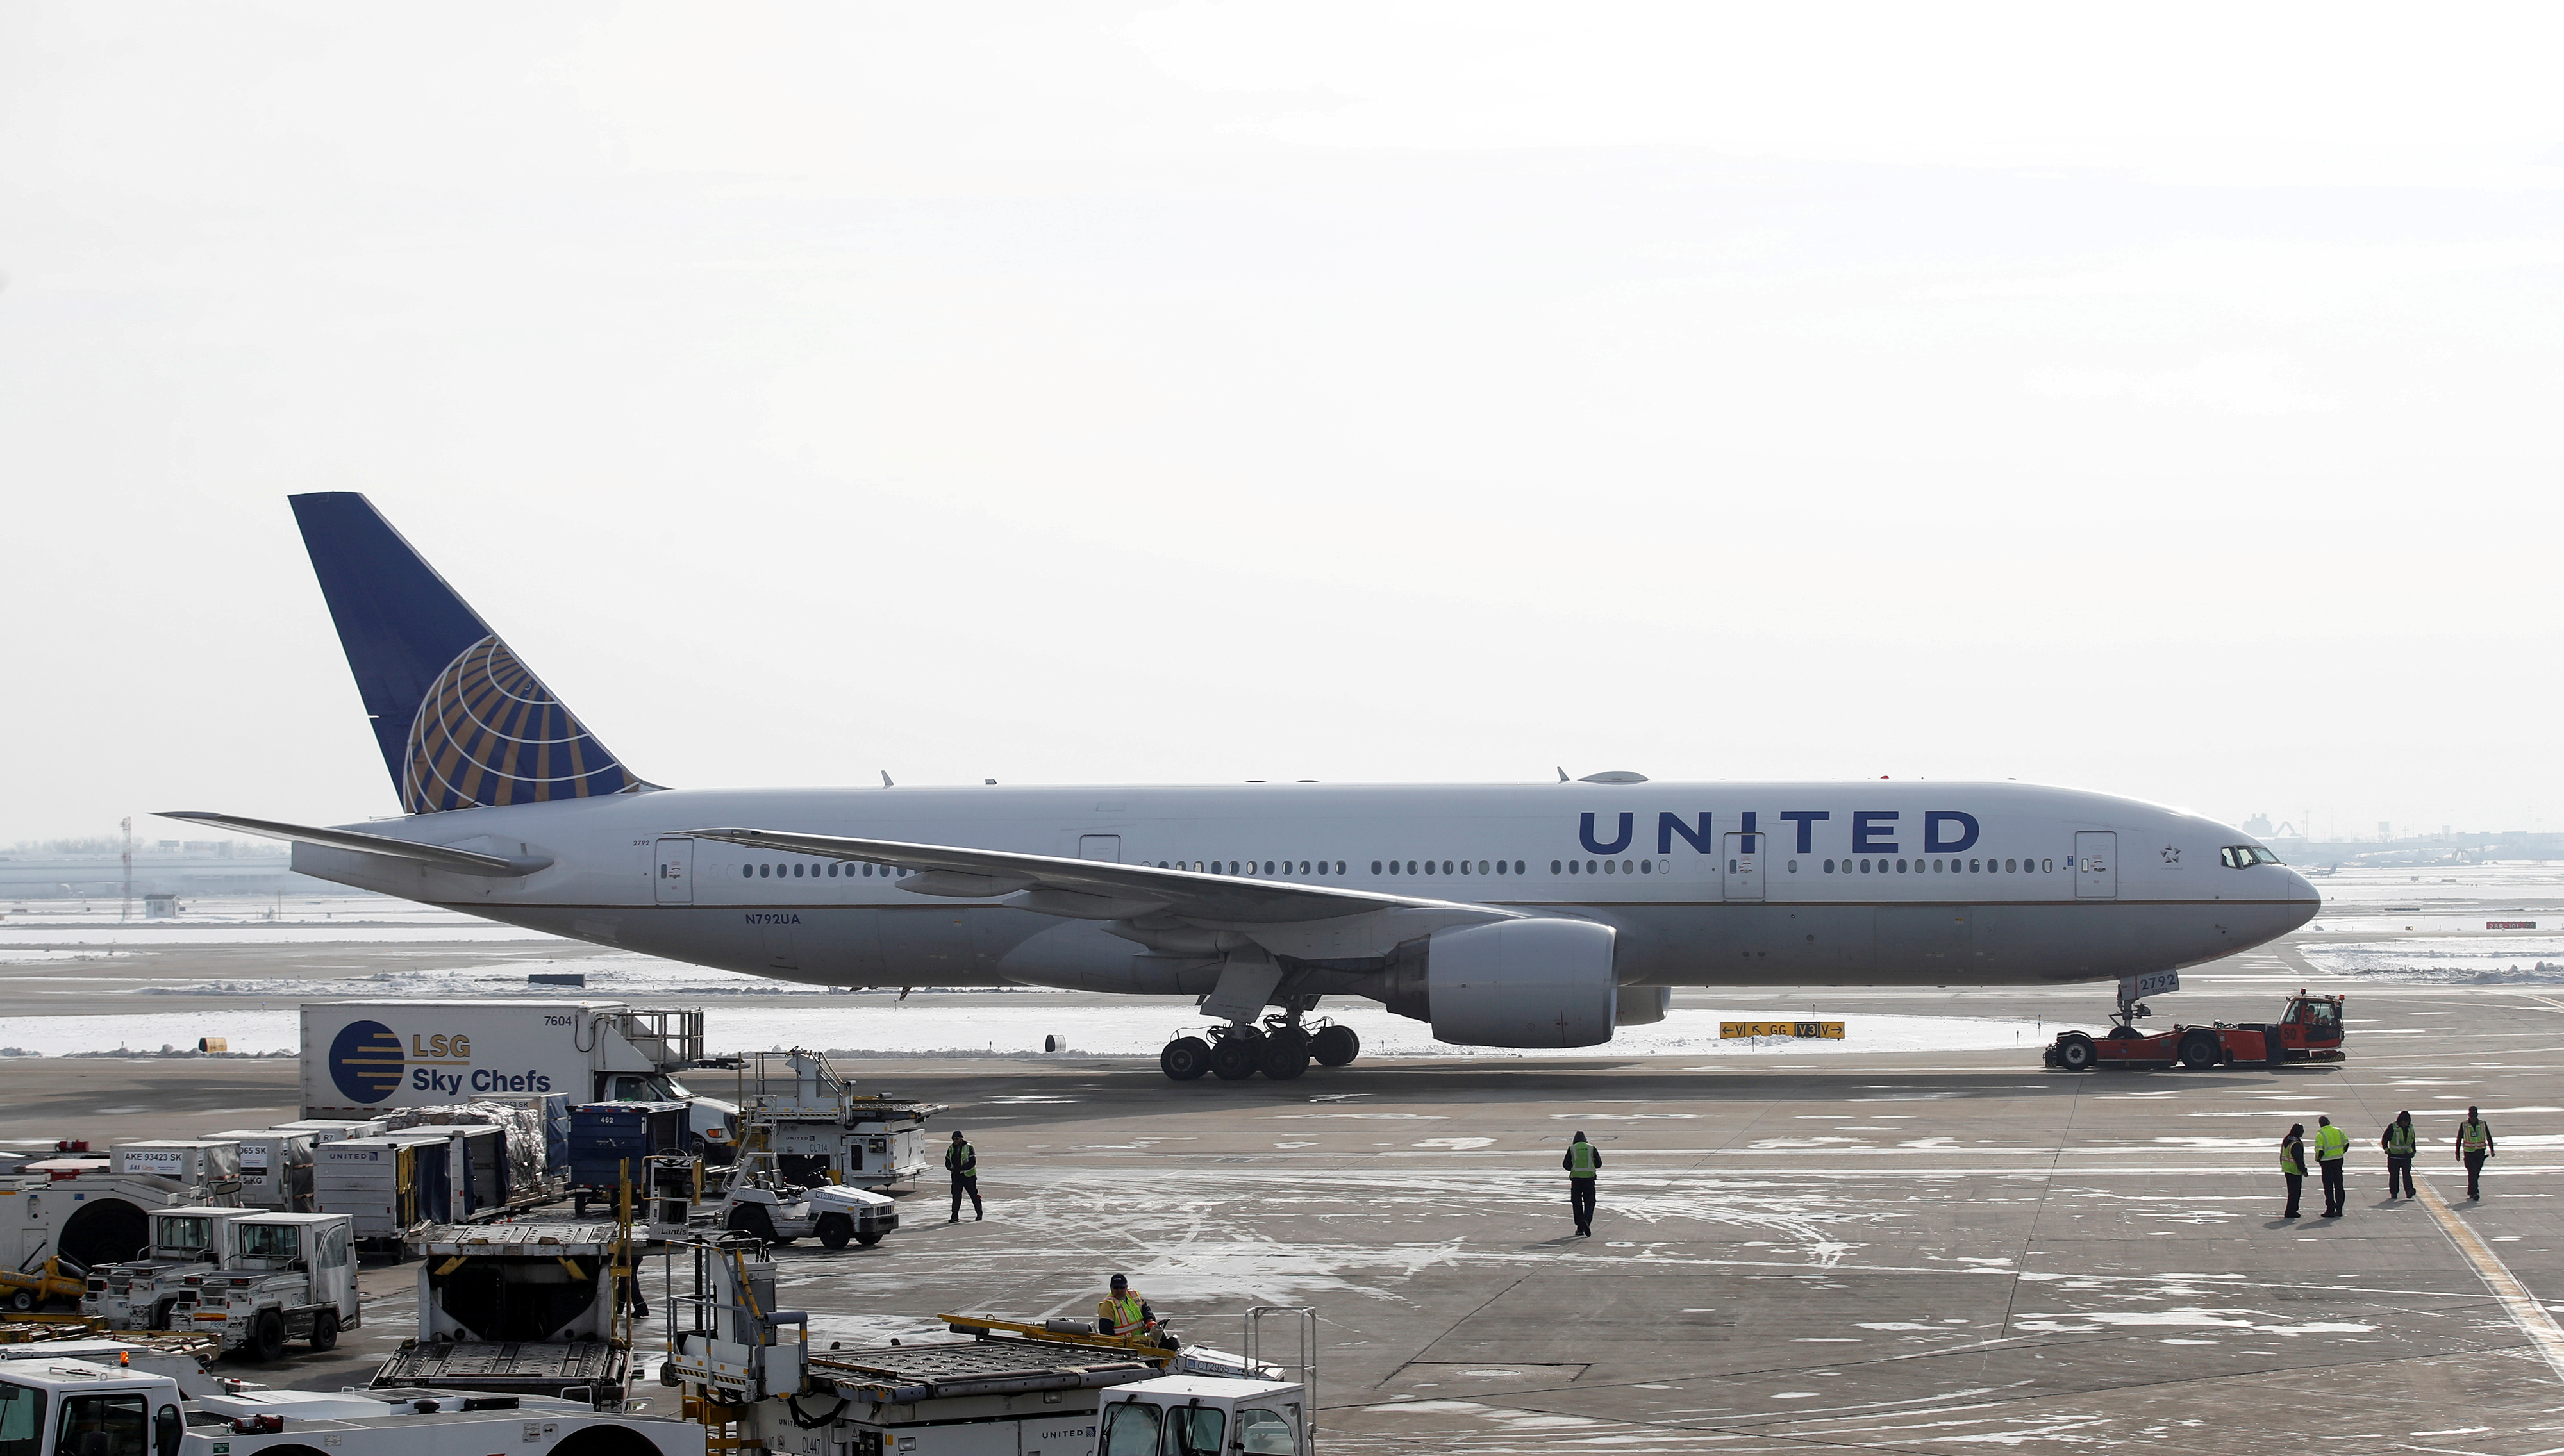 A United Airlines Boeing 777 plane is towed at O'Hare International Airport in Chicago